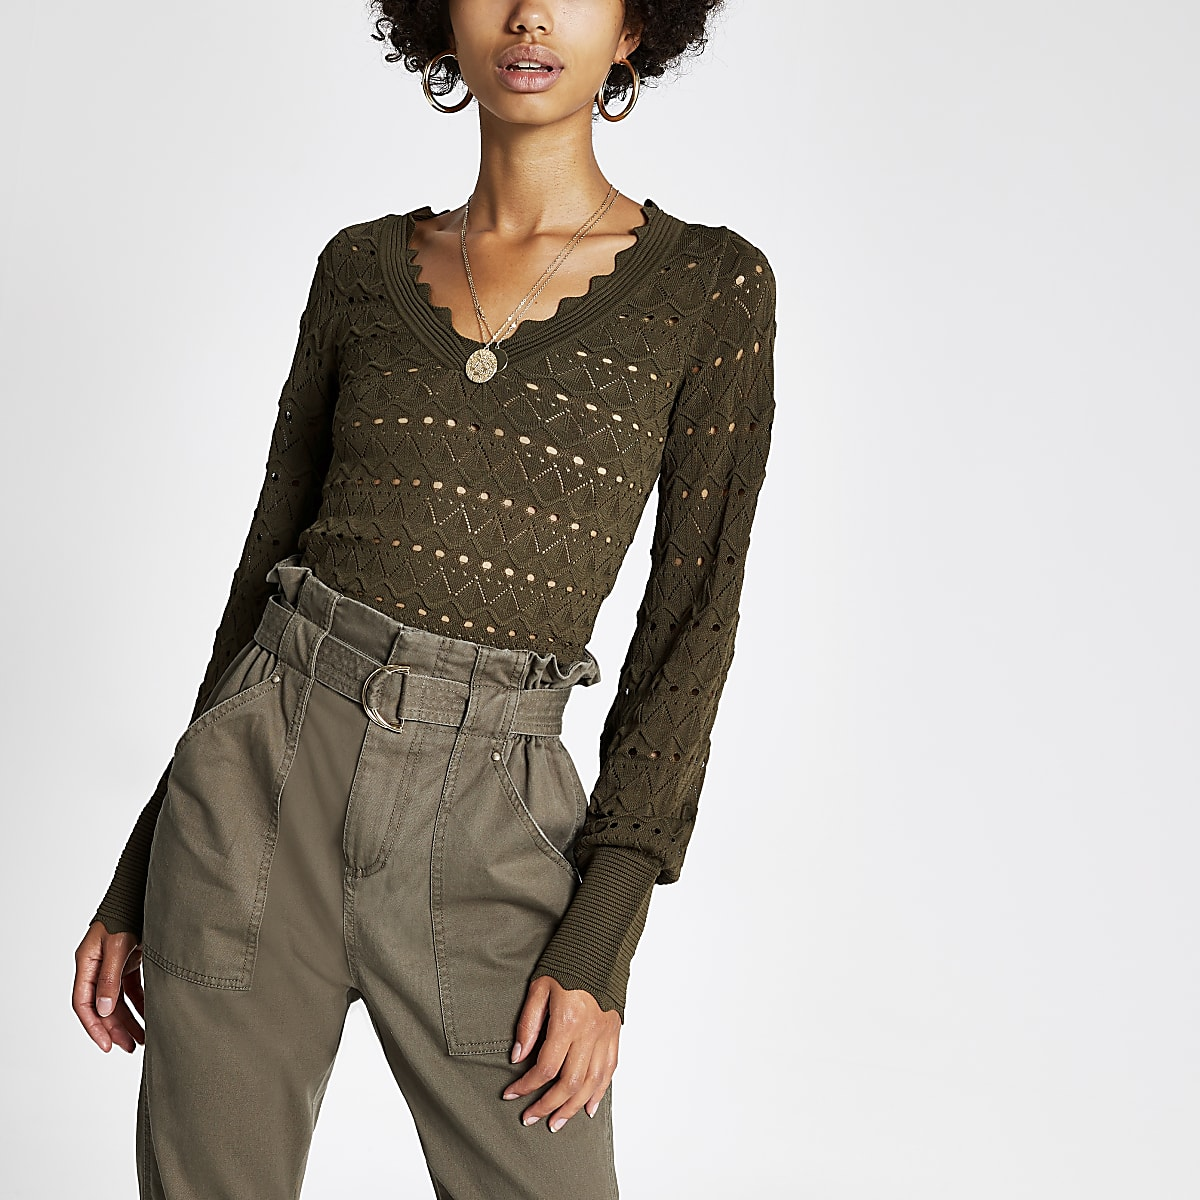 Khaki knitted long sleeve V neck crop top